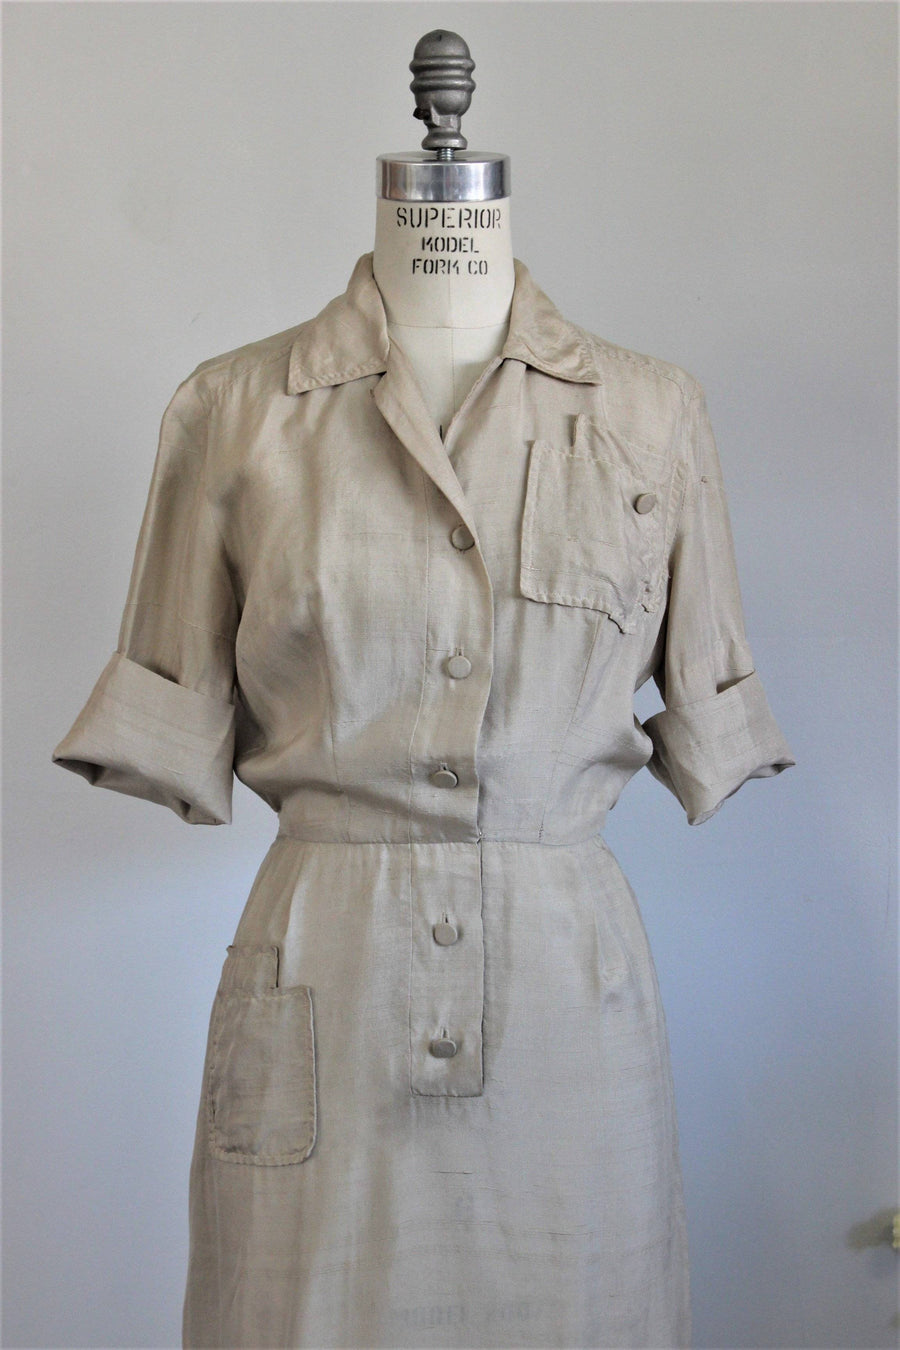 Vintage 1950s Khaki Silk Shirtwaist Dress, Alexanders of California Dress